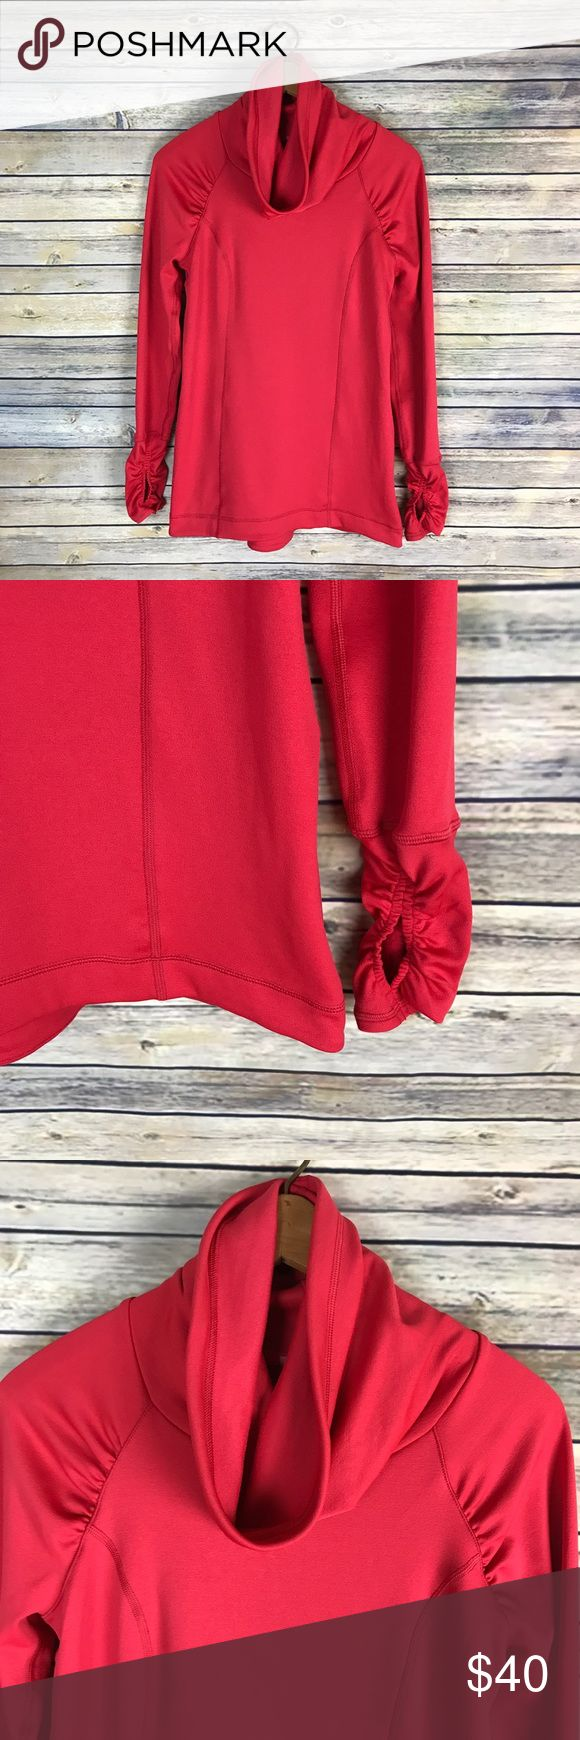 "Calia Carrie Underwood Red Funnel Neck Pullover Very cute bright reddish-coral long sleeve funnel neck sweatshirt. Perfect for your morning jog. Very gently used with no flaws. From Carrie Underwood's Calia athletic wear line.   Measurements laying flat (without stretching)— -Armpit to armpit: 18"" -Length, shoulder to hem: 26"" CALIA by Carrie Underwood Tops Sweatshirts & Hoodies"